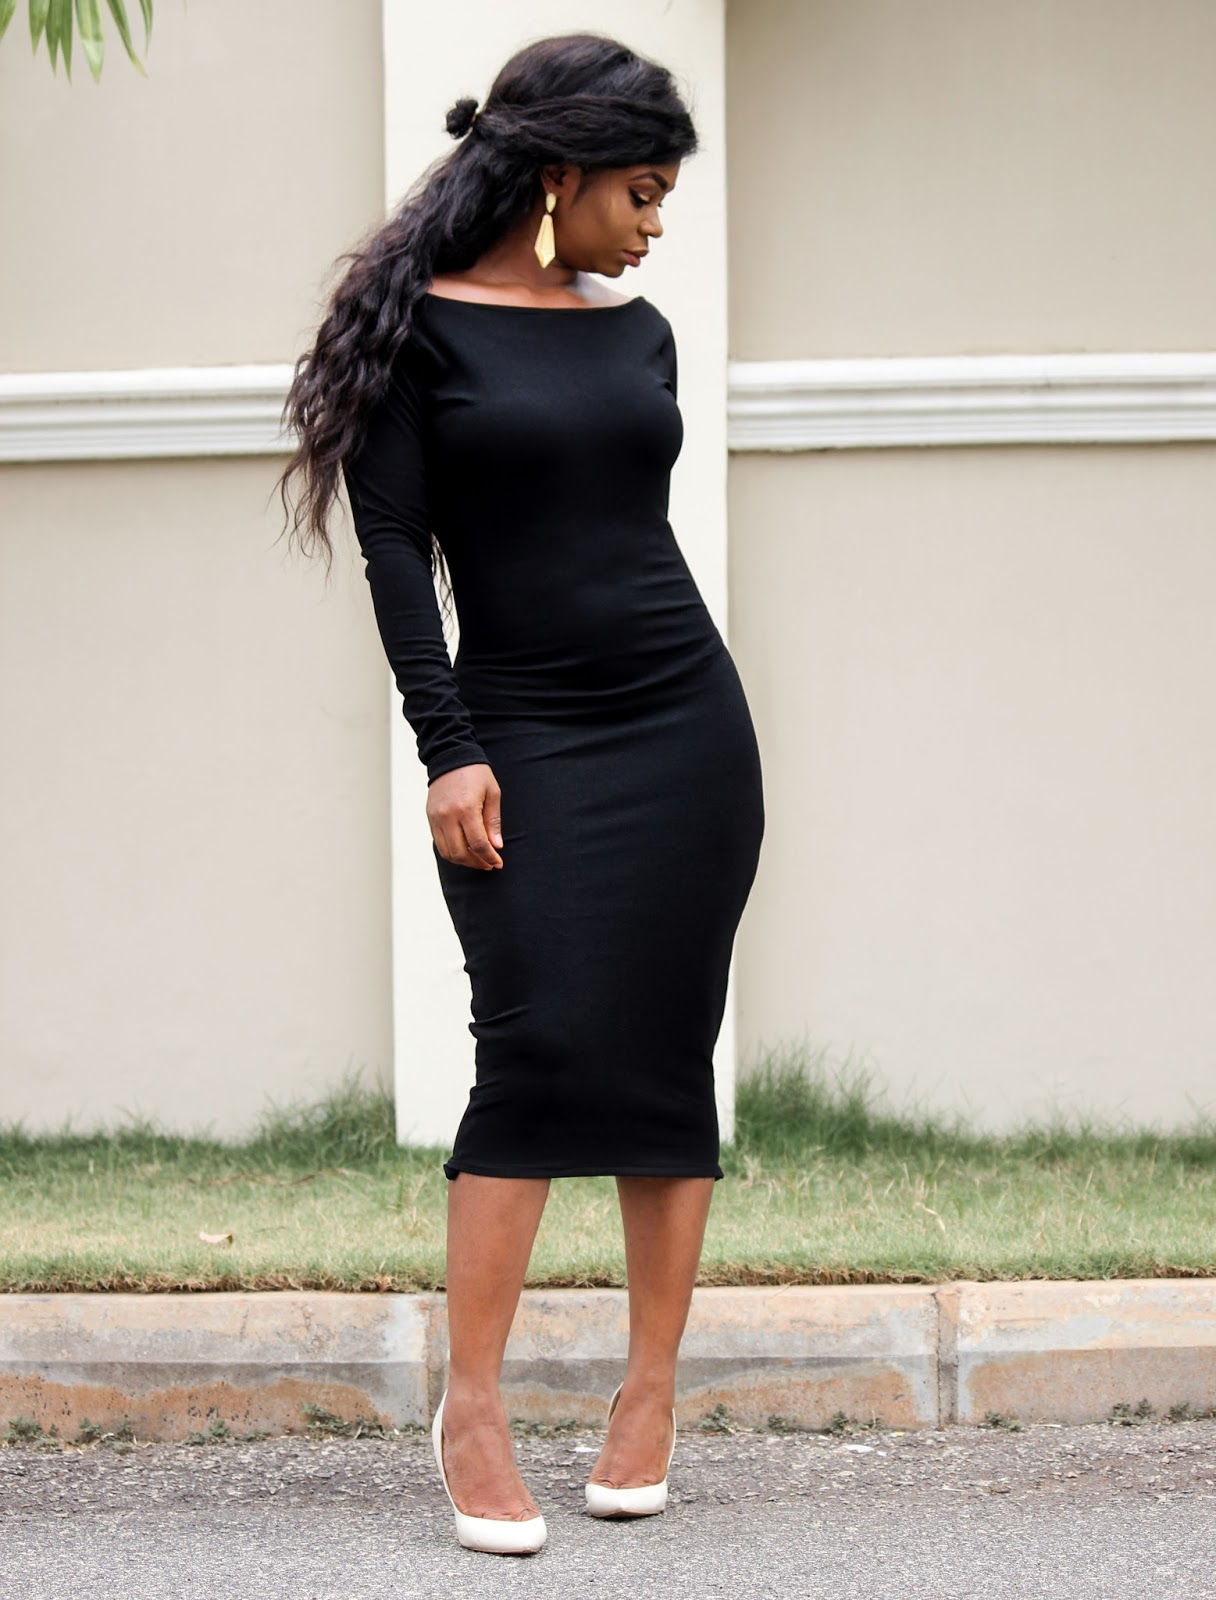 PORSHHER BLACK DRESS - Long sleeve Black Bodycon Dress by Porshher